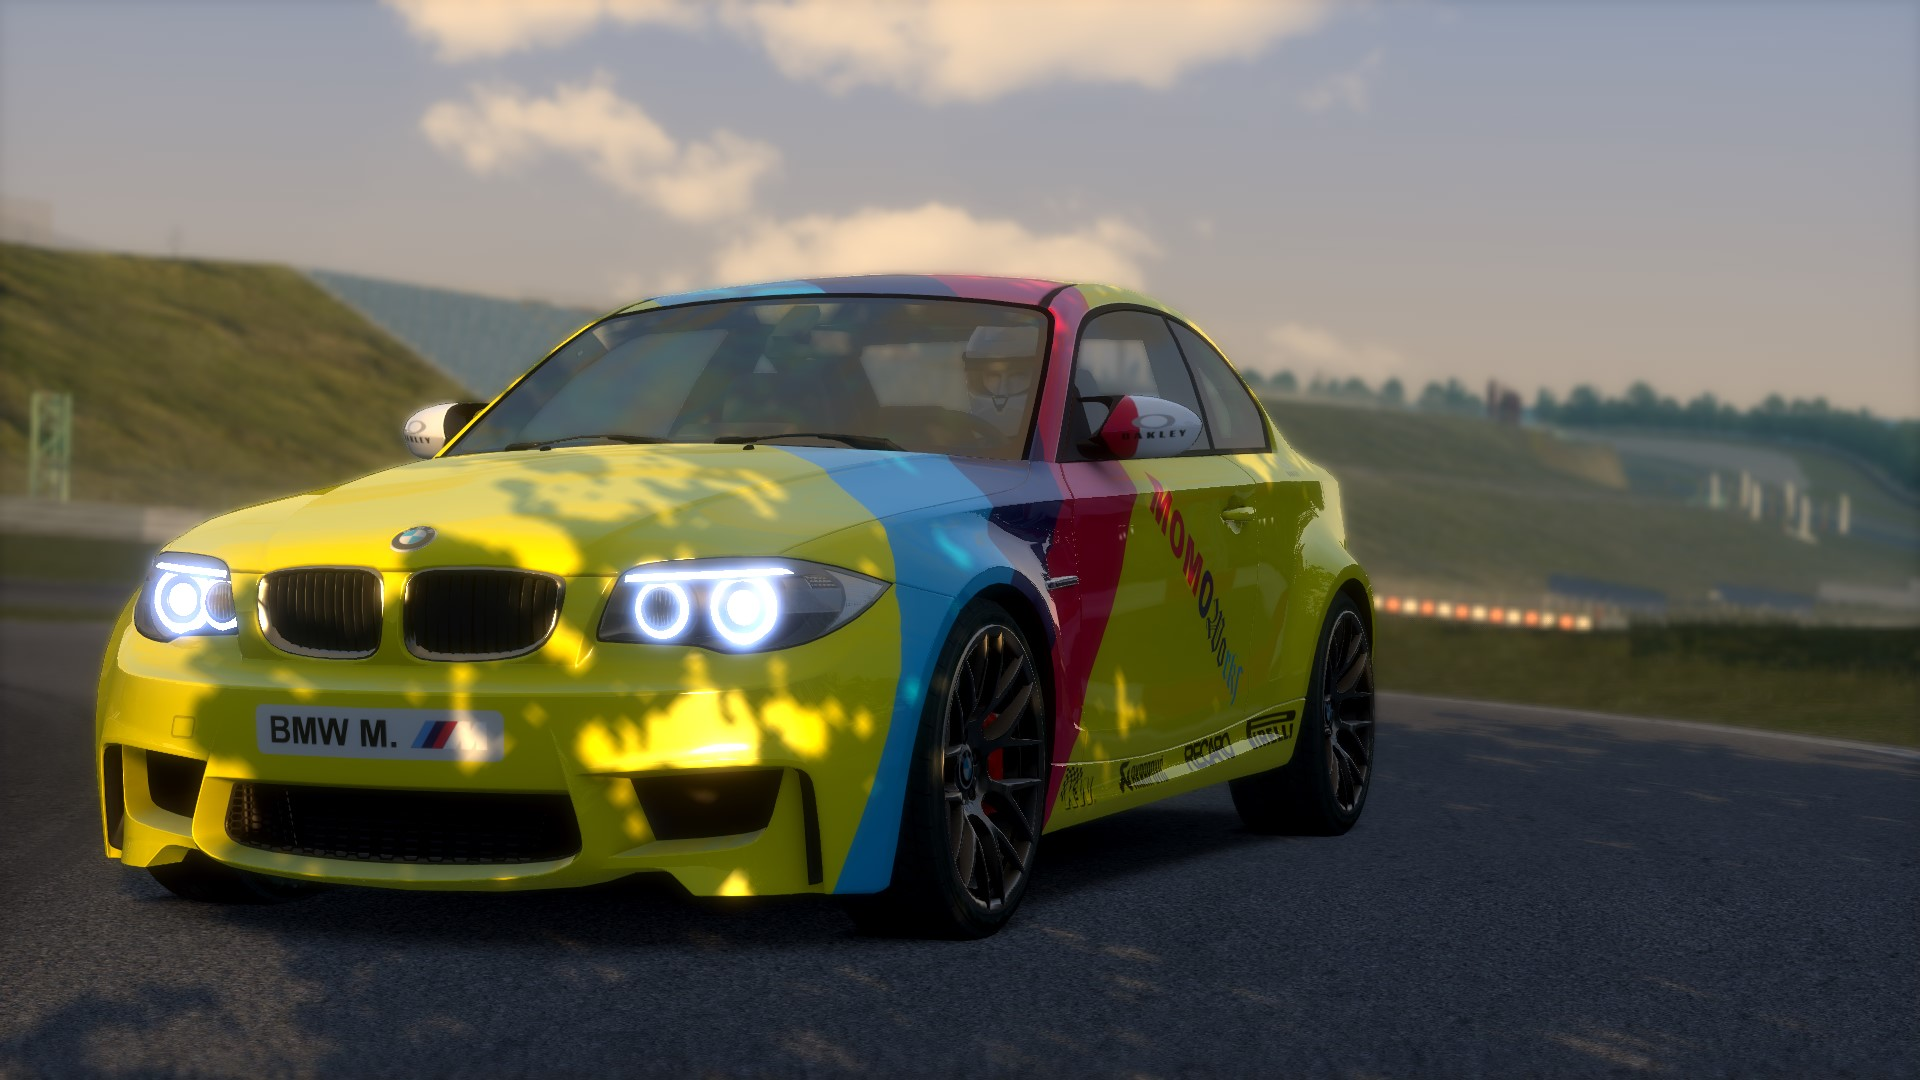 Screenshot_bmw_1m_nurburgring_10-2-2015-23-33-52.jpg